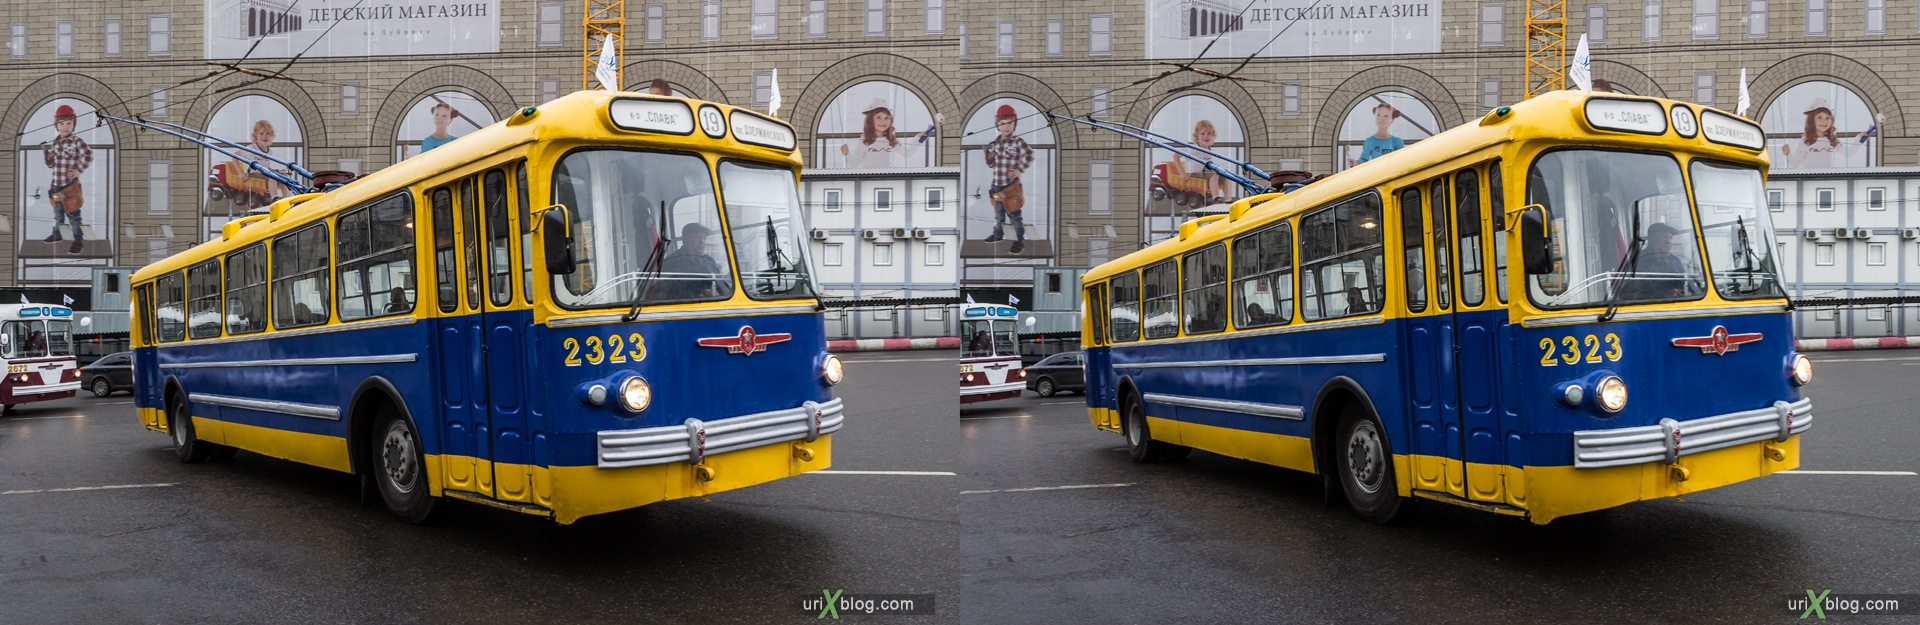 2013, Moscow, parade, old, ancient, trolleybus, street, Lubjanskaja square, 3D, stereo pair, cross-eyed, crossview, cross view stereo pair, stereoscopic